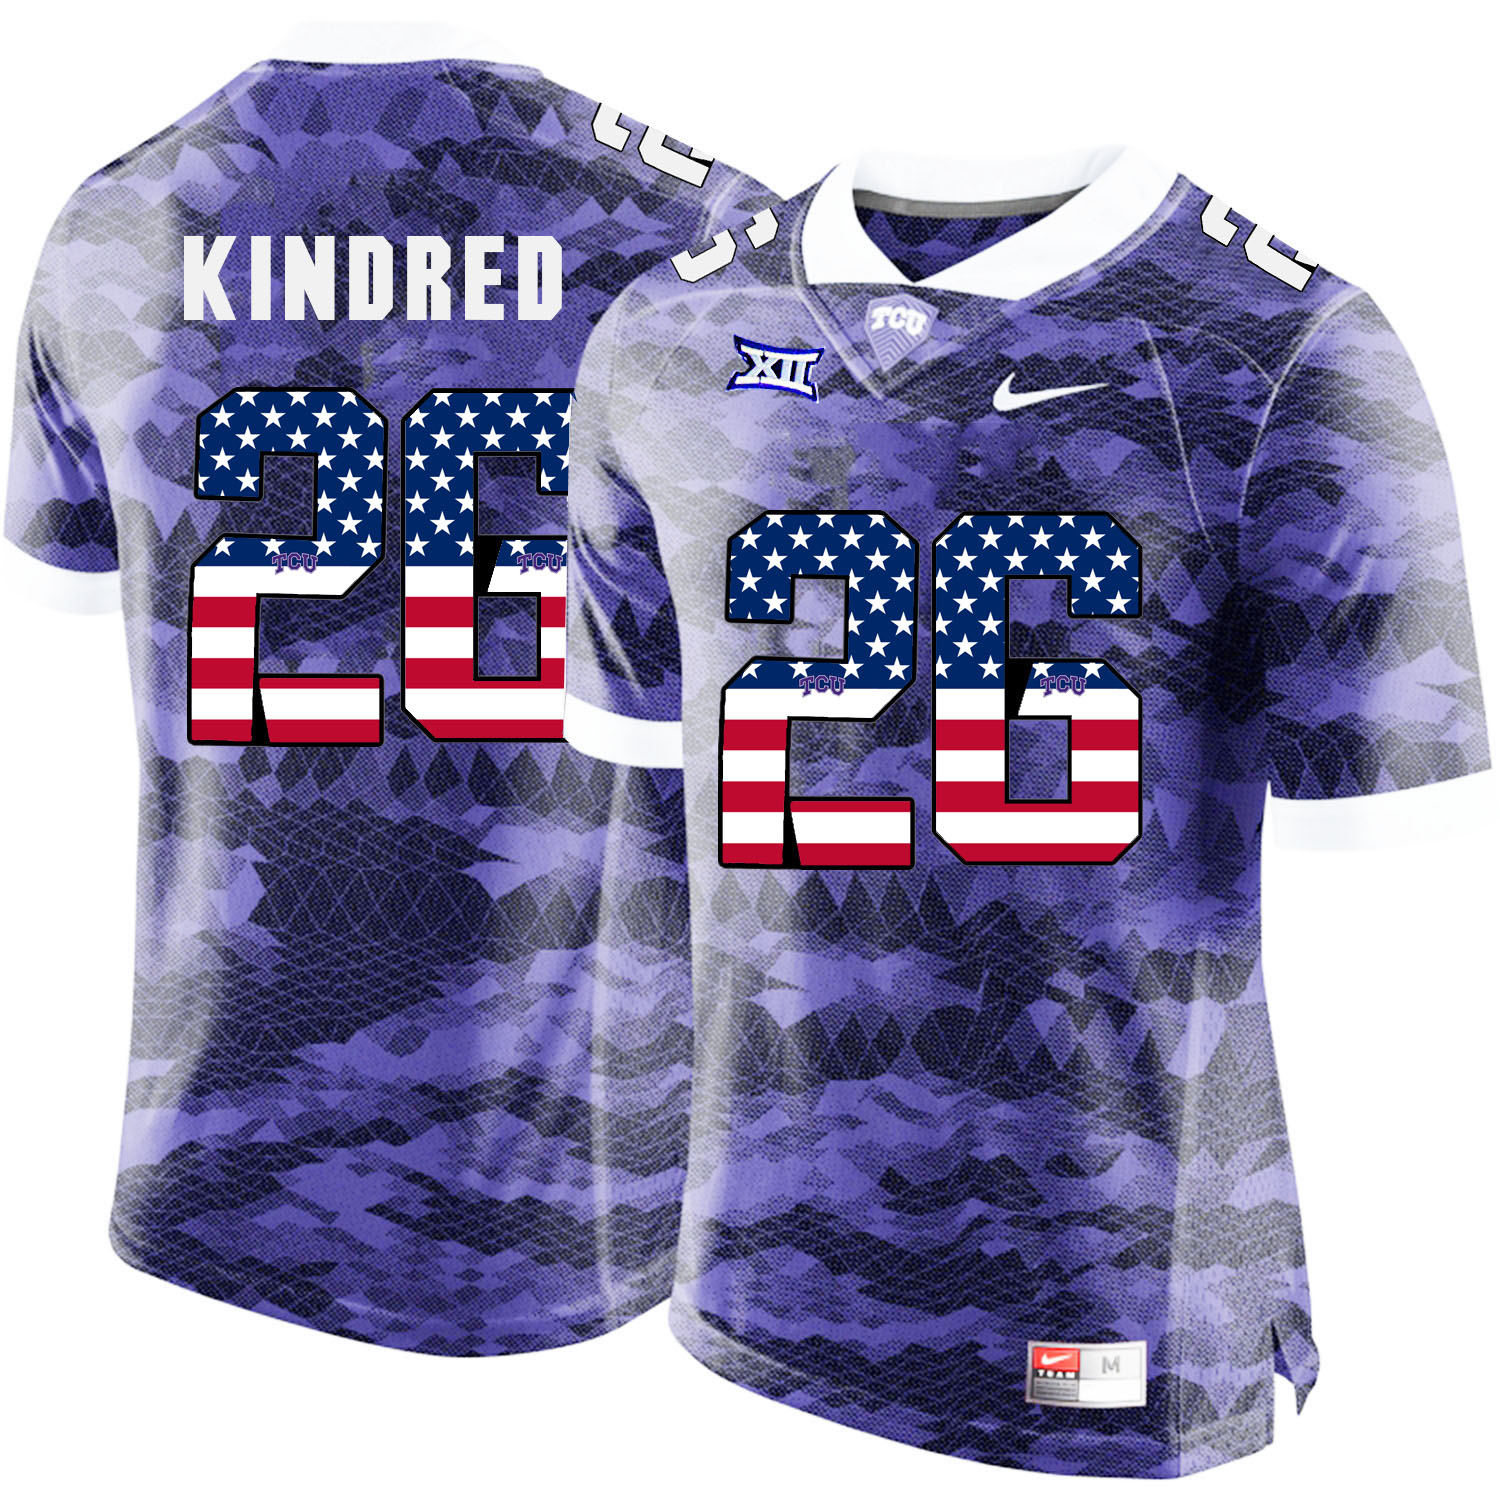 TCU Horned Frogs 26 Derrick Kindred Purple USA Flag College Football Jersey